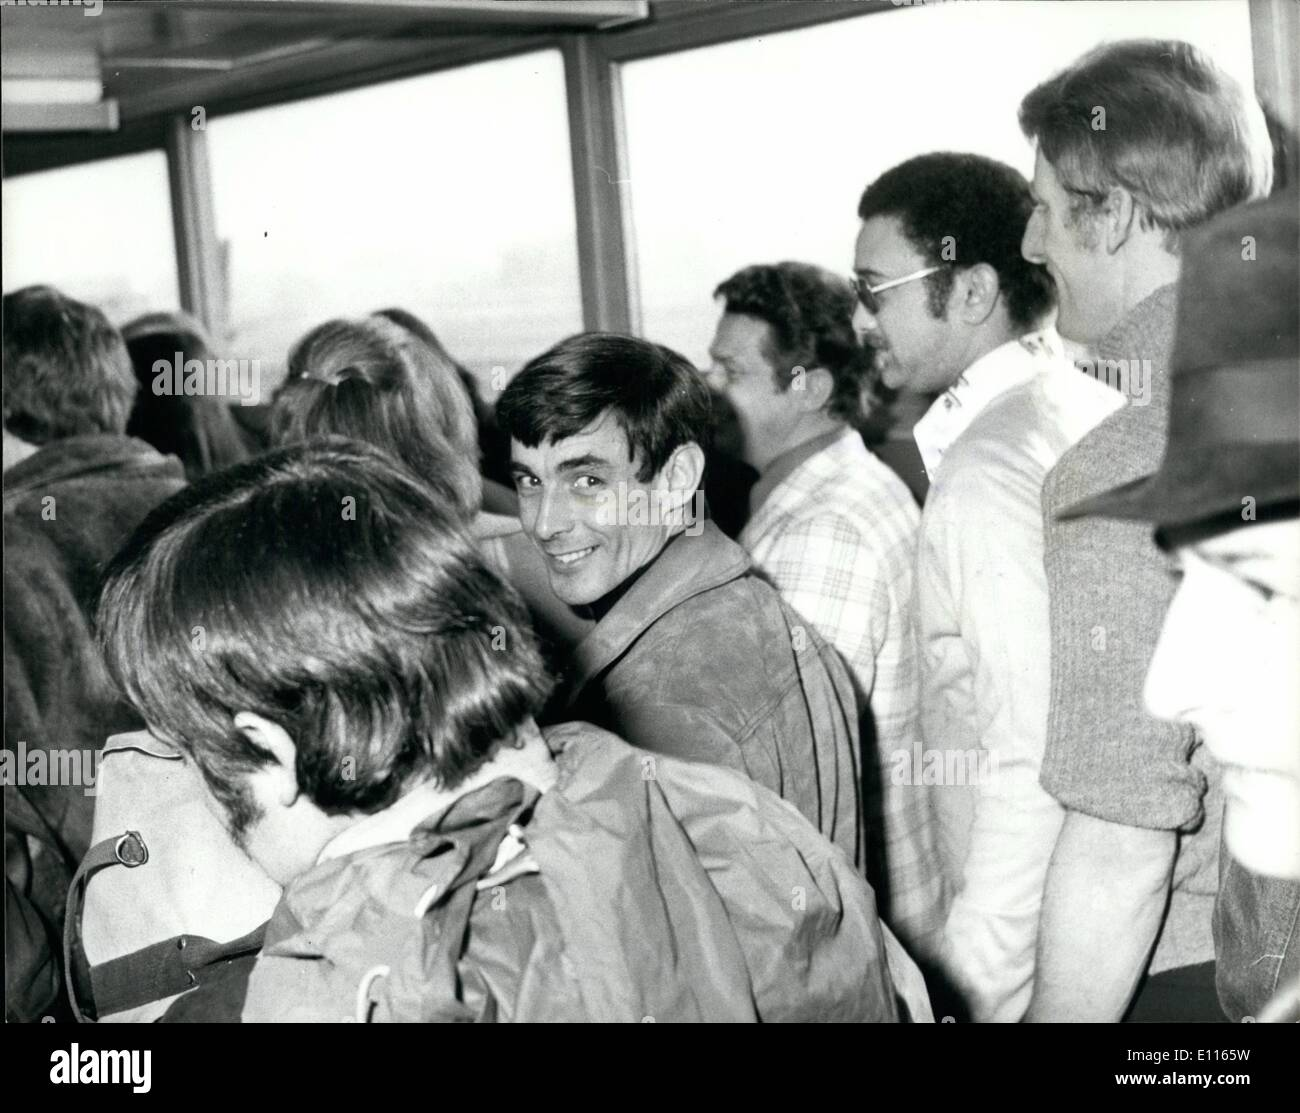 Jan. 01, 1976 - British Mercenaries Leave By Air For Angola: A party of British mercenaries flew out from London's - Stock Image